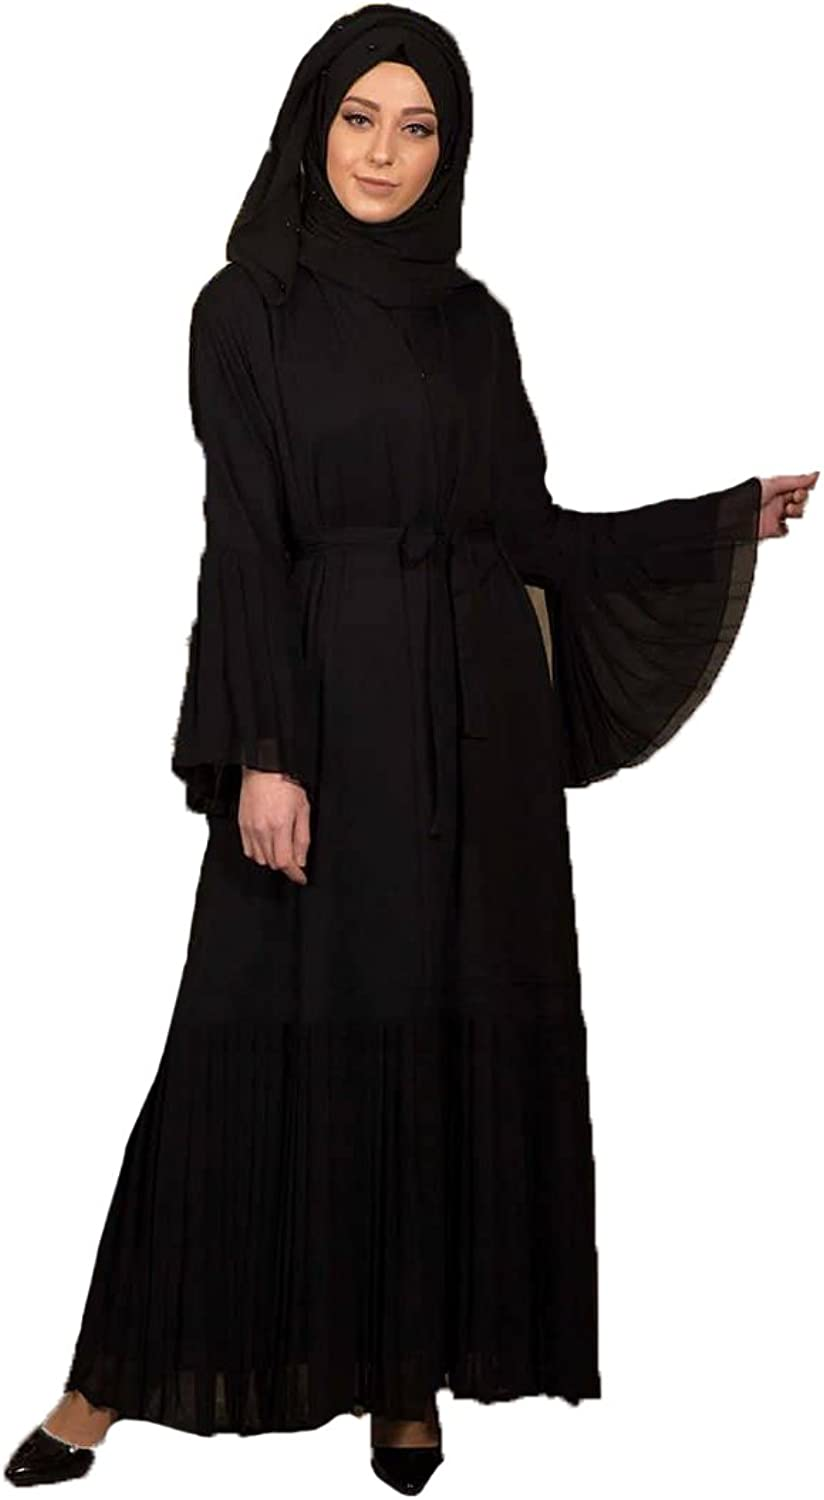 & x130;z Otantik Turkish Black Unlined V Neck Collar Modesty Abaya Long Dress Arabic Koftan for Muslim Women